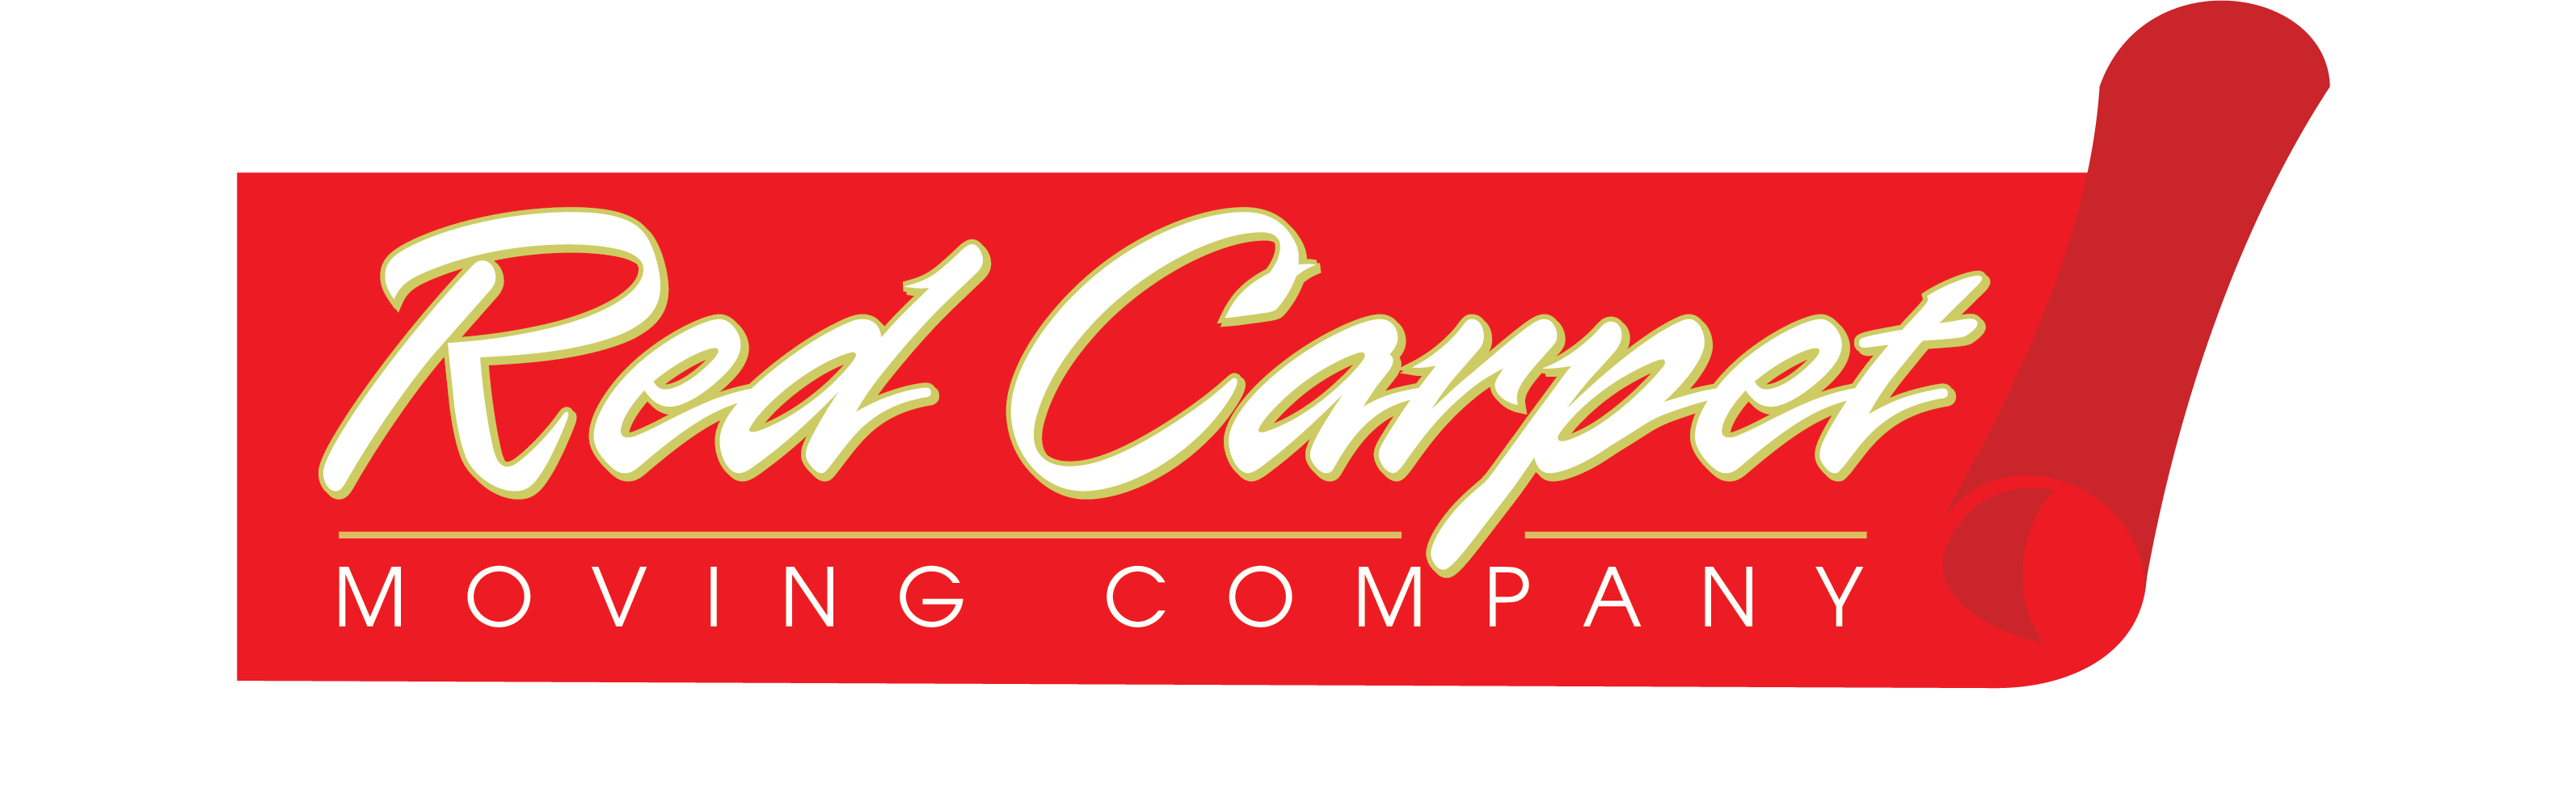 Red Carpet Moving Company Logo